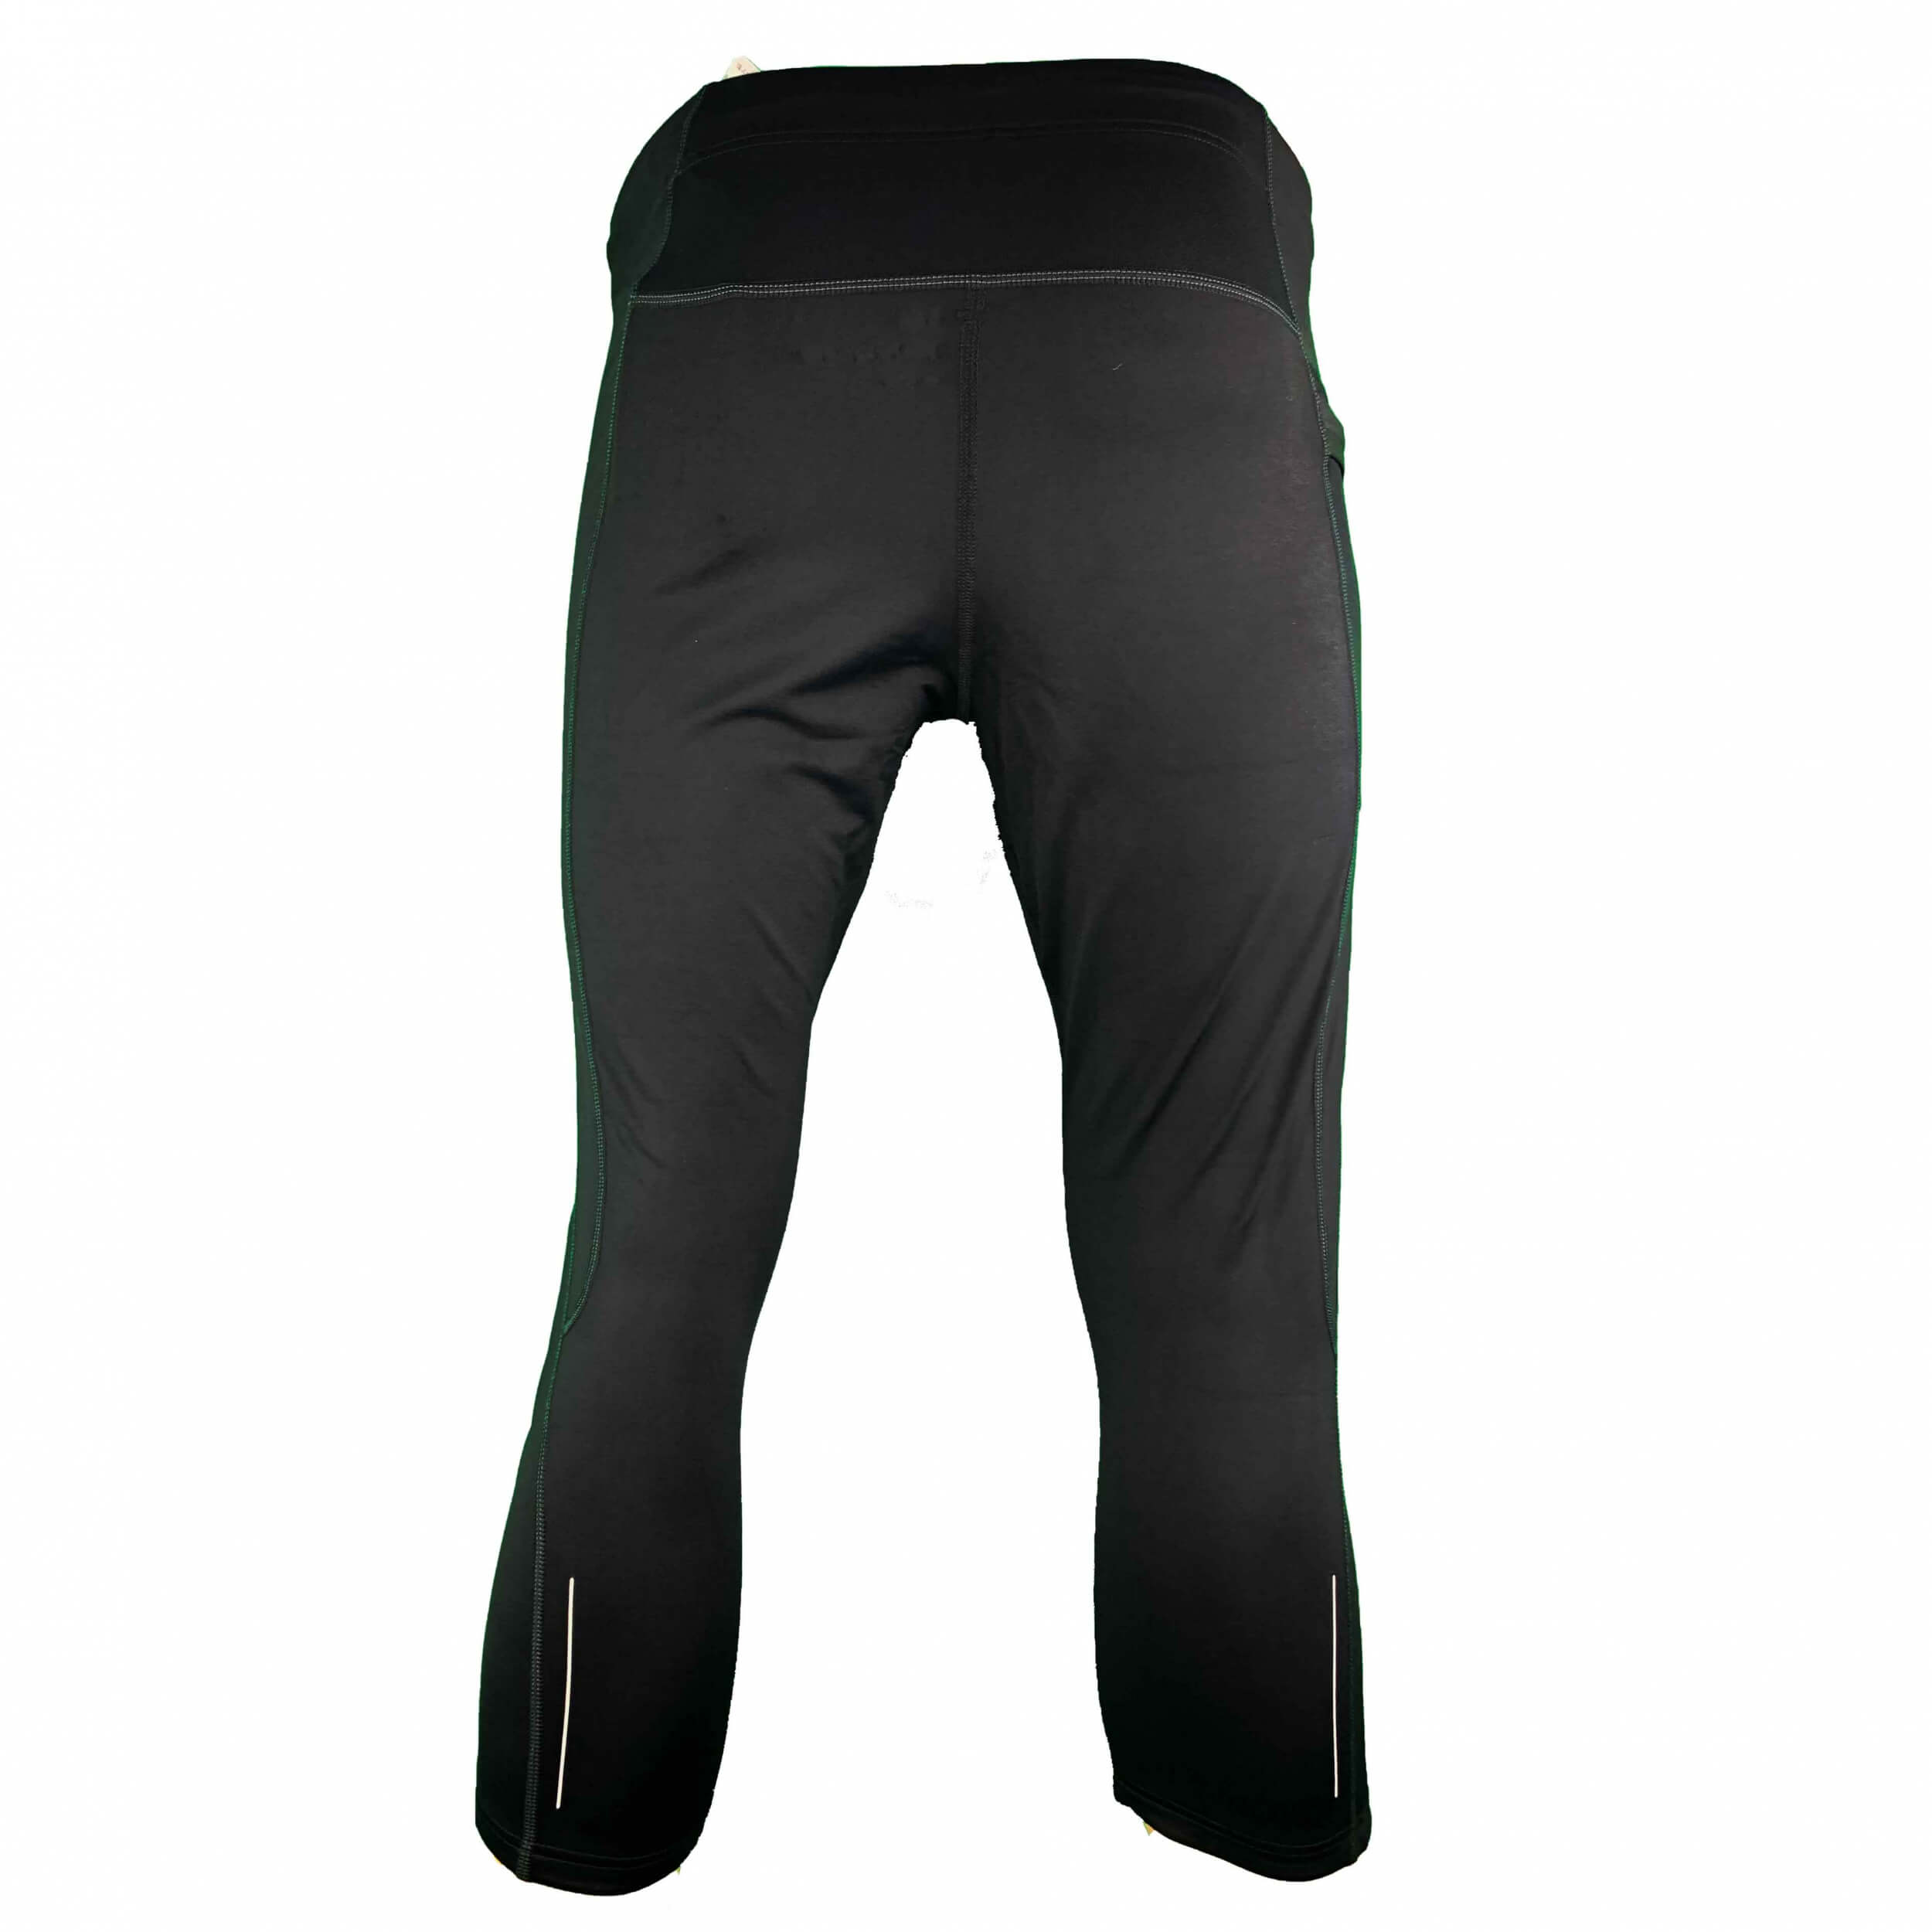 Peak Performance Herren kurze Lauf Hose Tight Lavvu 311B schwarz